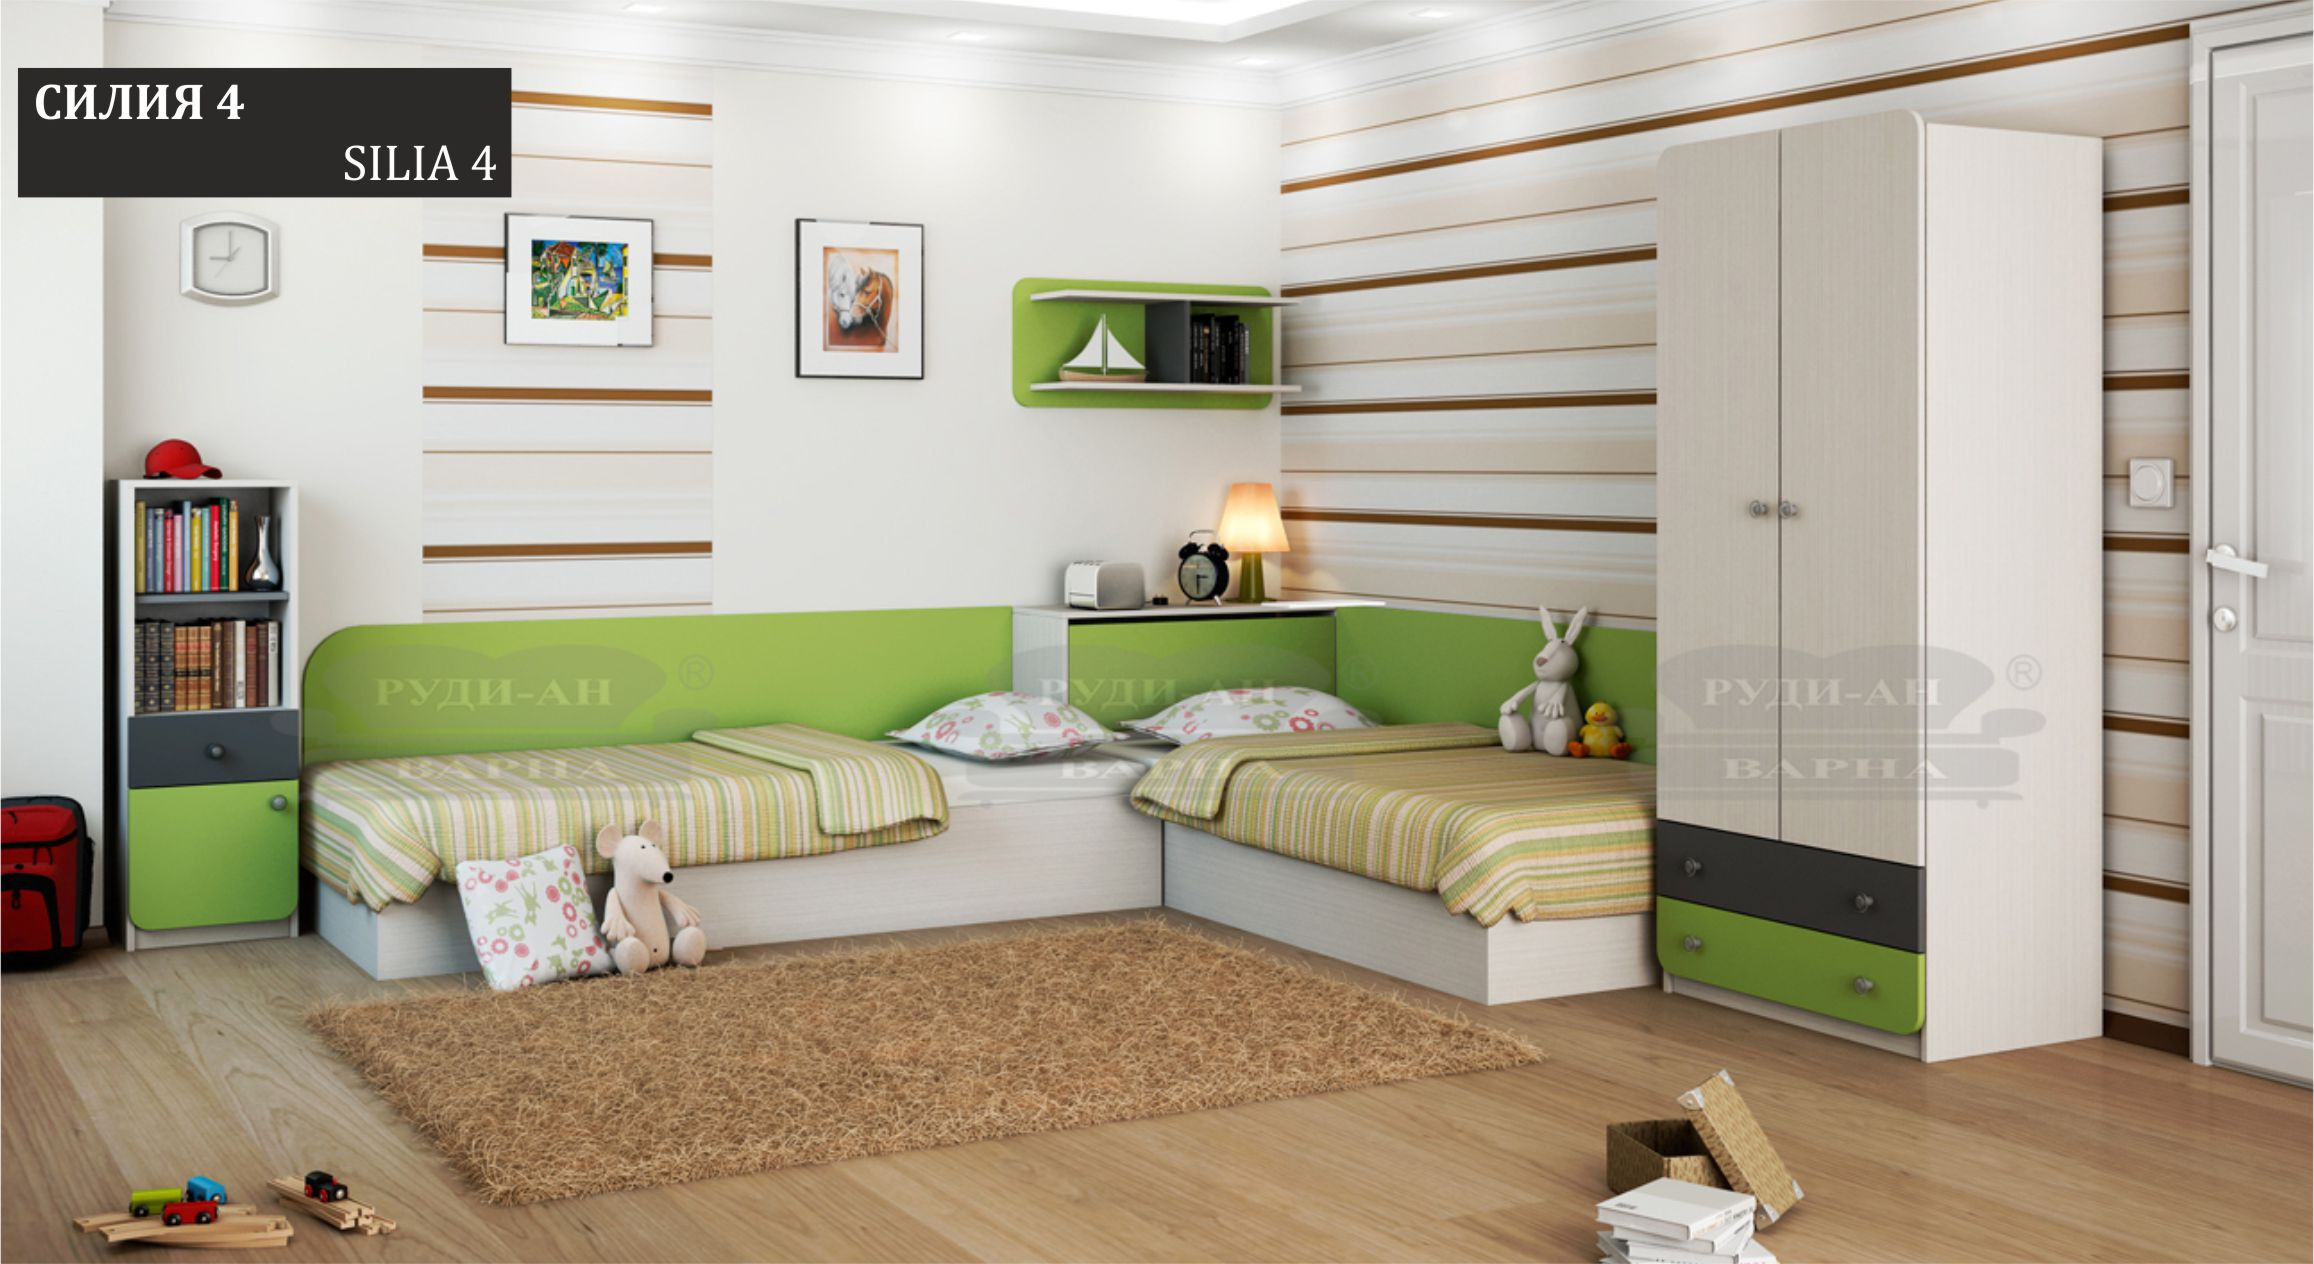 Modular childrens bedroom furniture 28 images modern for Modular bedroom furniture systems